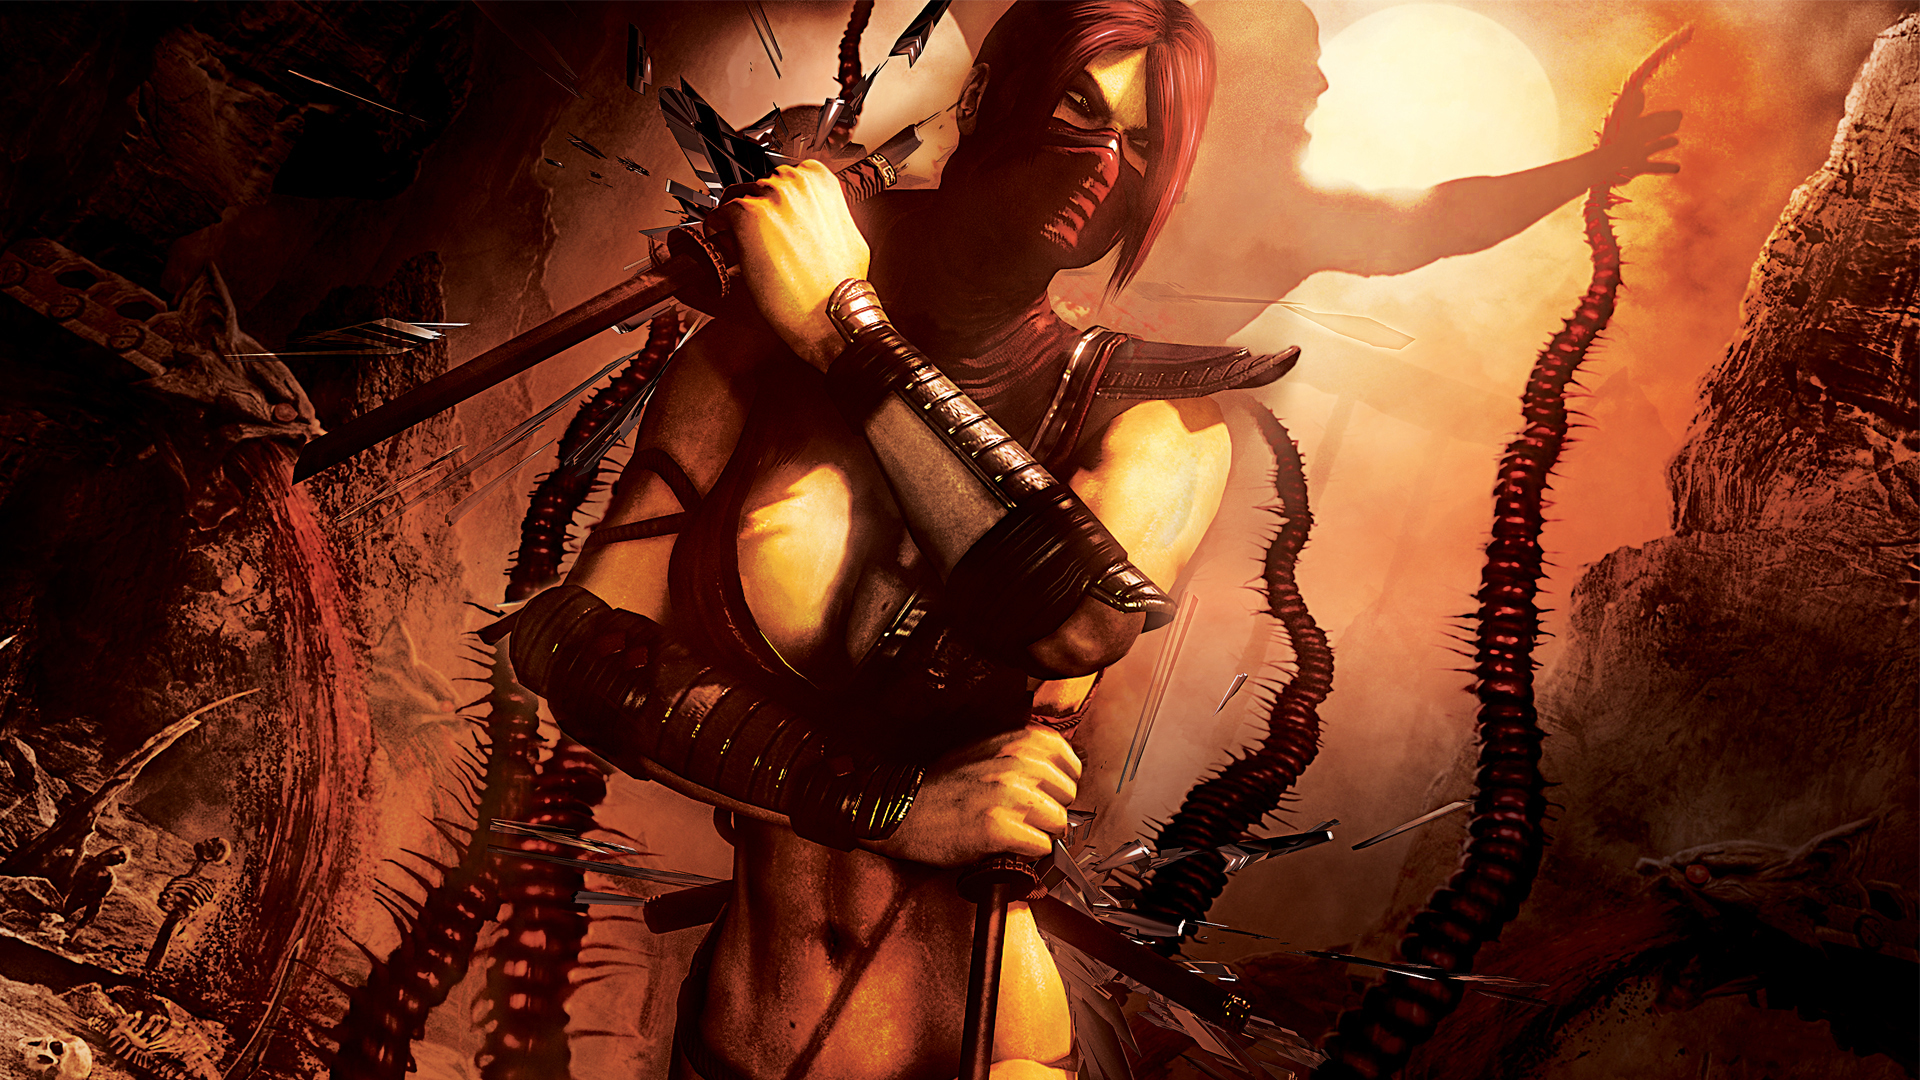 Mortal Kombat Wallpaper Scarlet 3 Mortal Kombat Games Fan Site